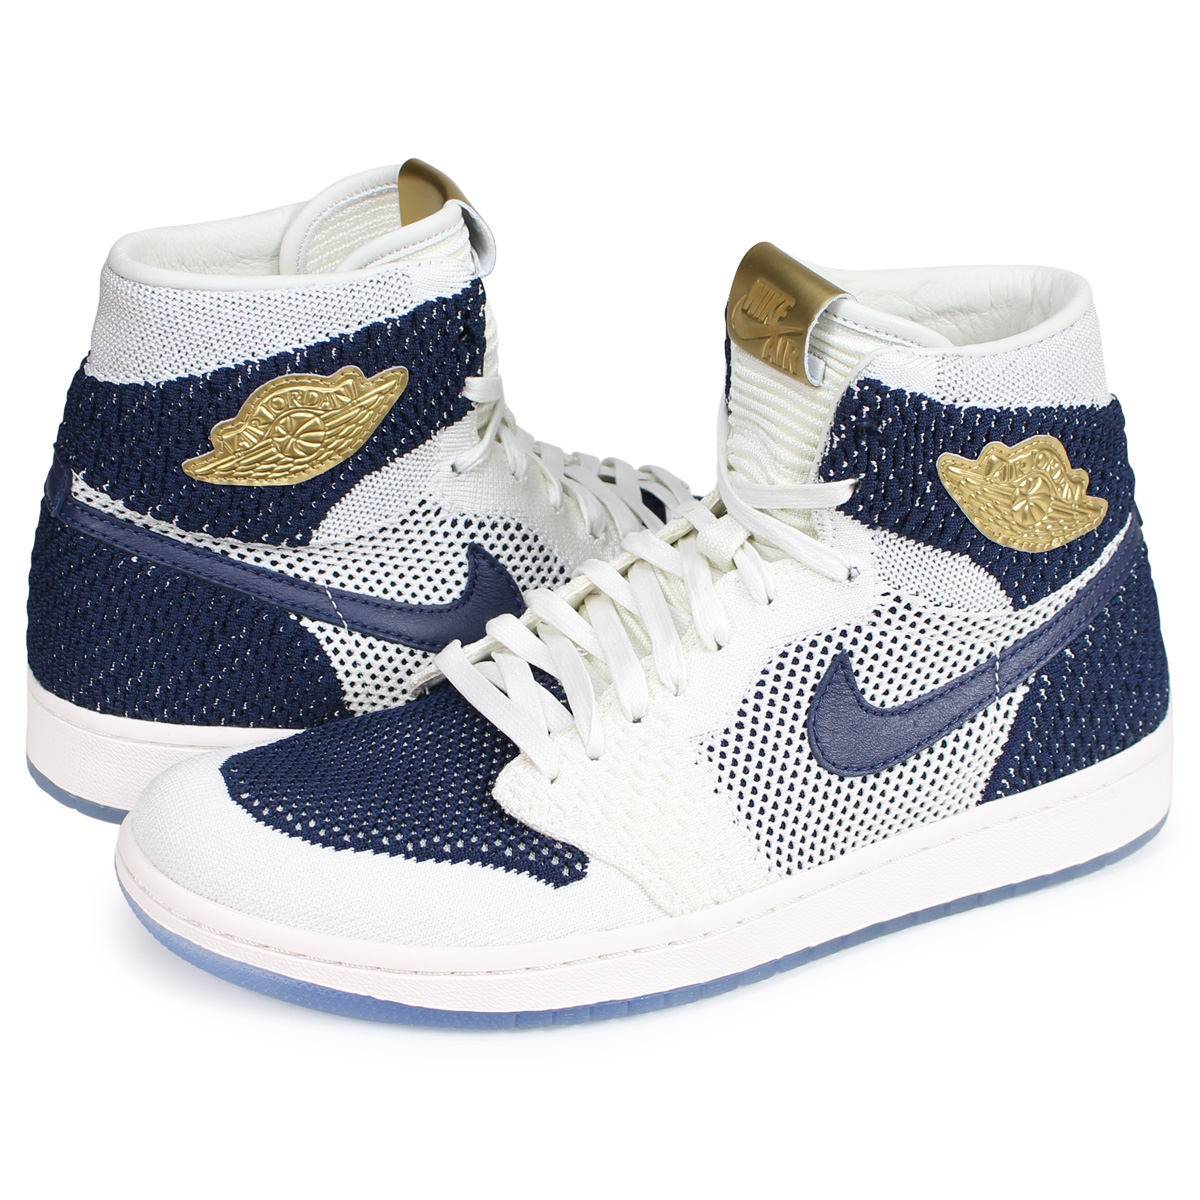 new product 8a4ad 1a929 Nike NIKE Air Jordan 1 nostalgic high sneakers men AIR JORDAN 1 RETRO HI  FLYKNIT JETER white AH7233-105 [2/21 Shinnyu load] [192]